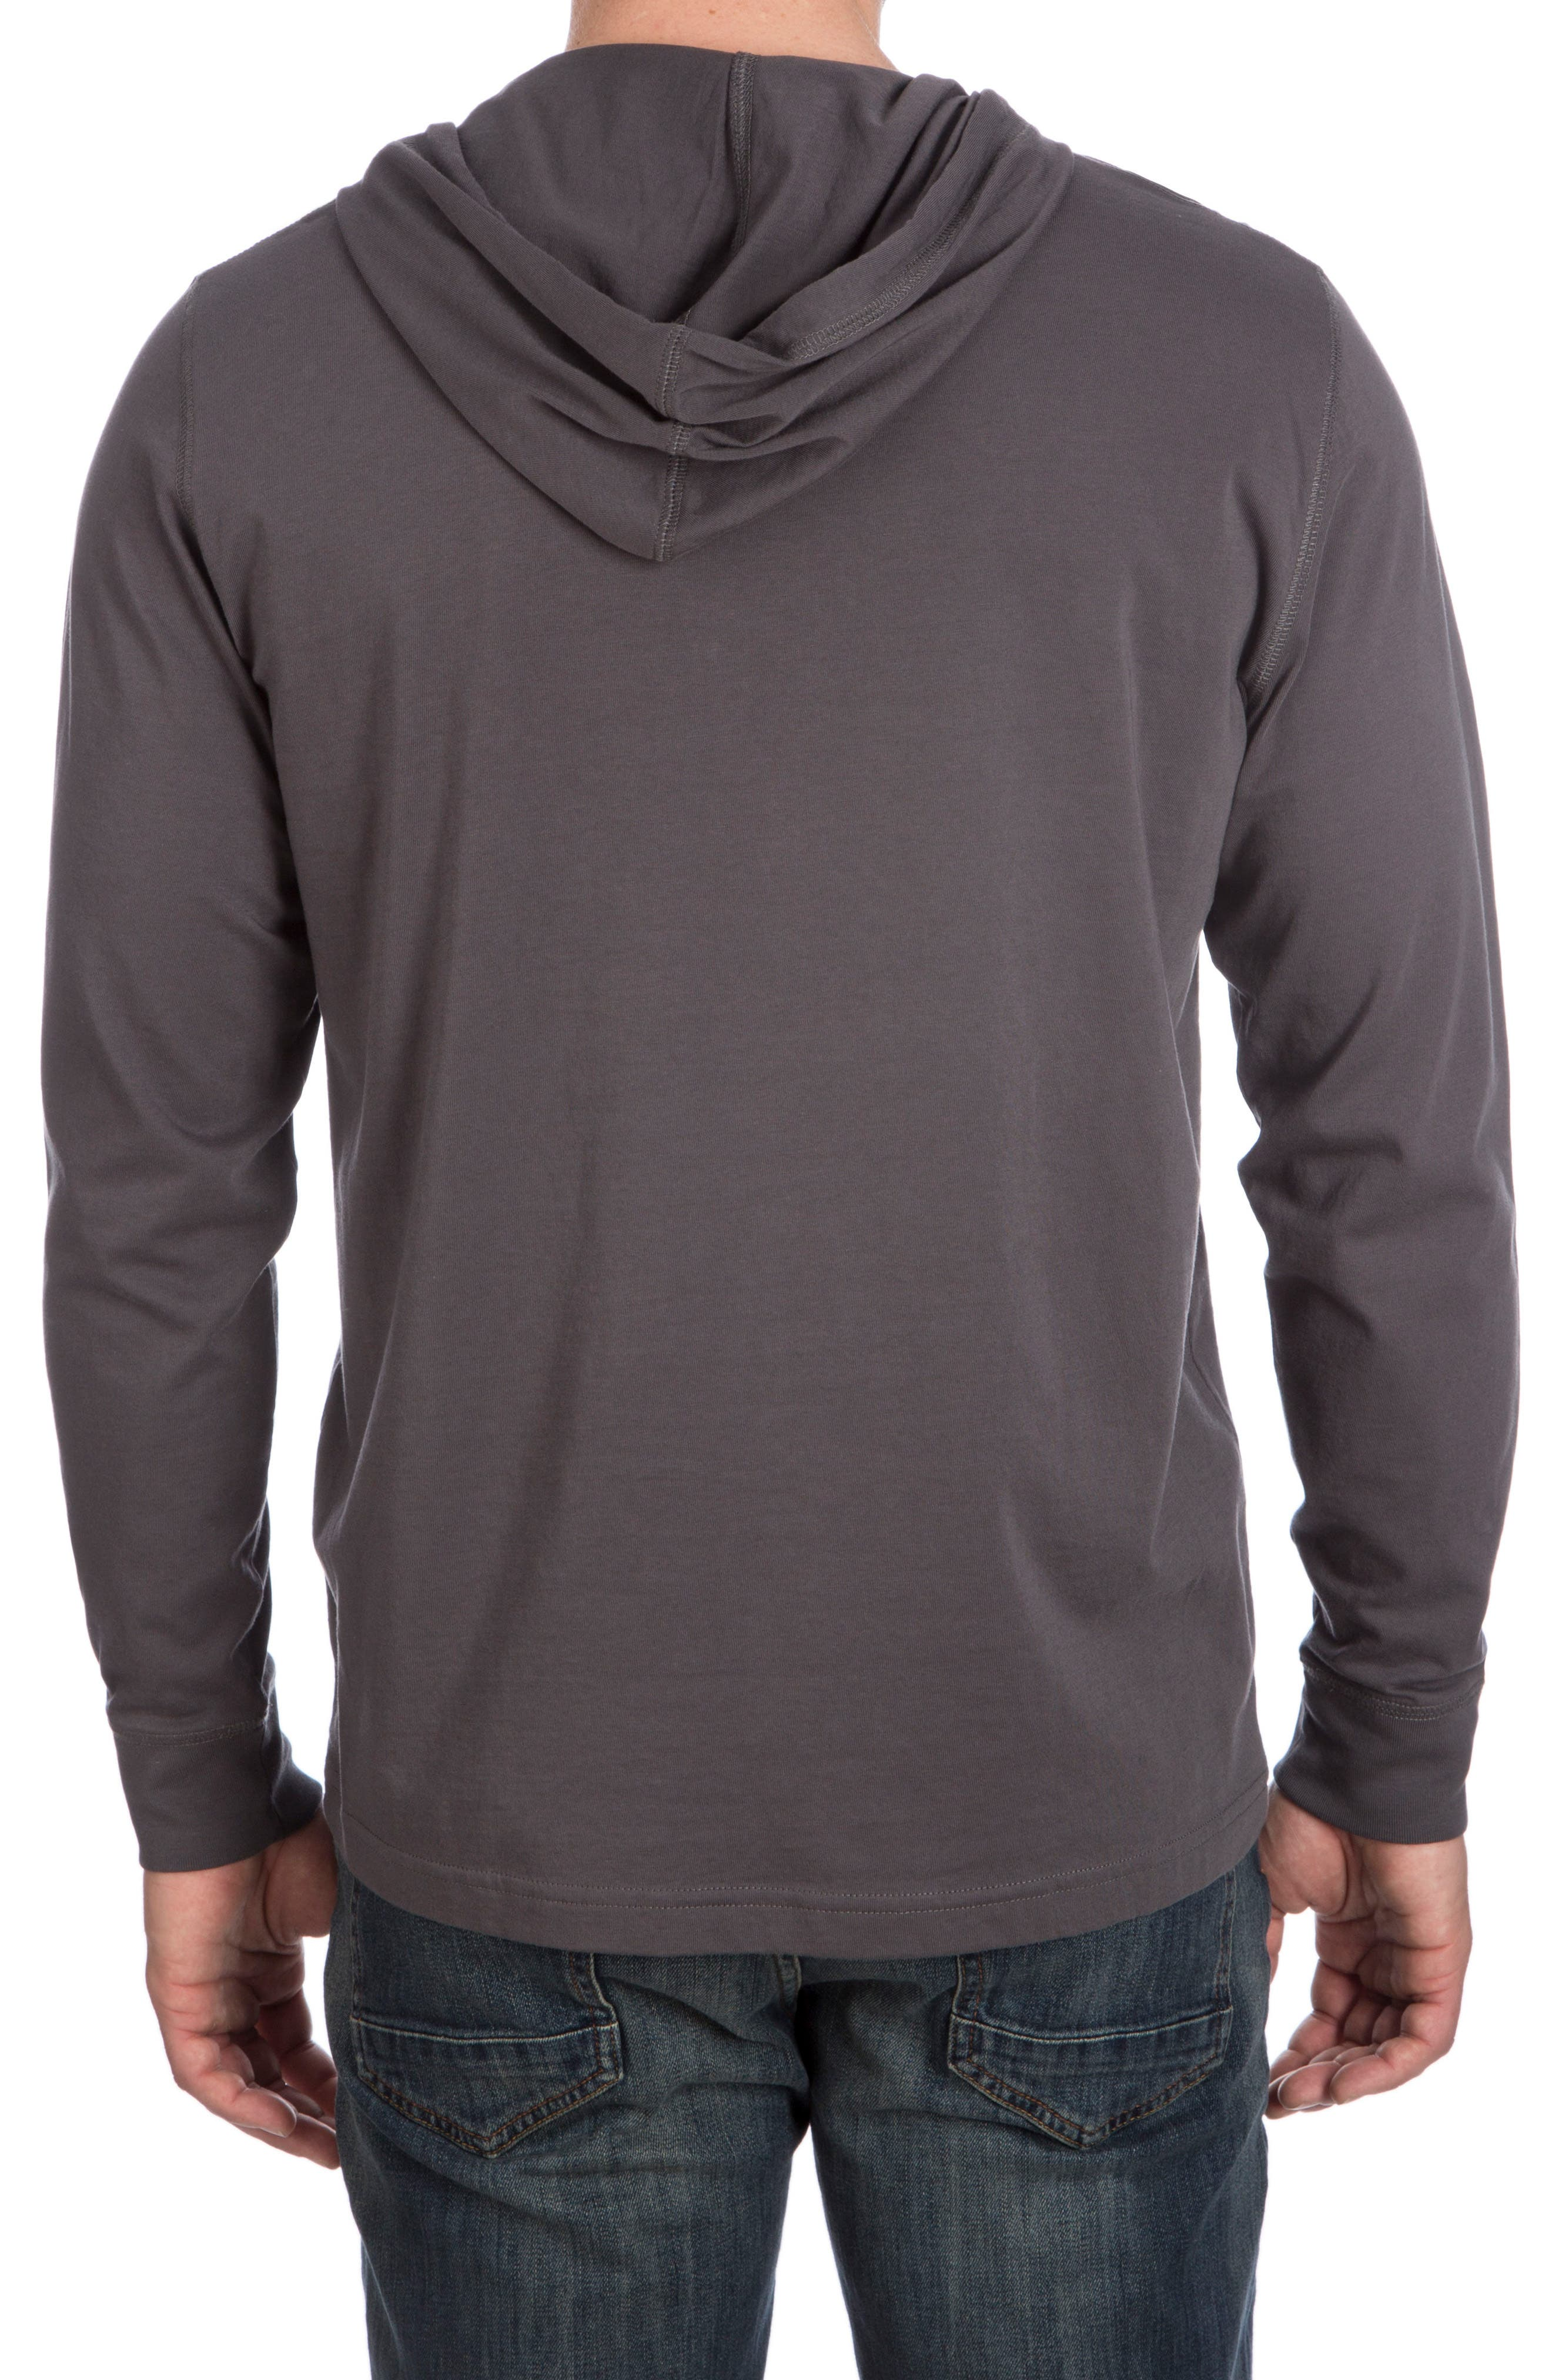 Delano Henley Hoodie,                             Alternate thumbnail 2, color,                             003